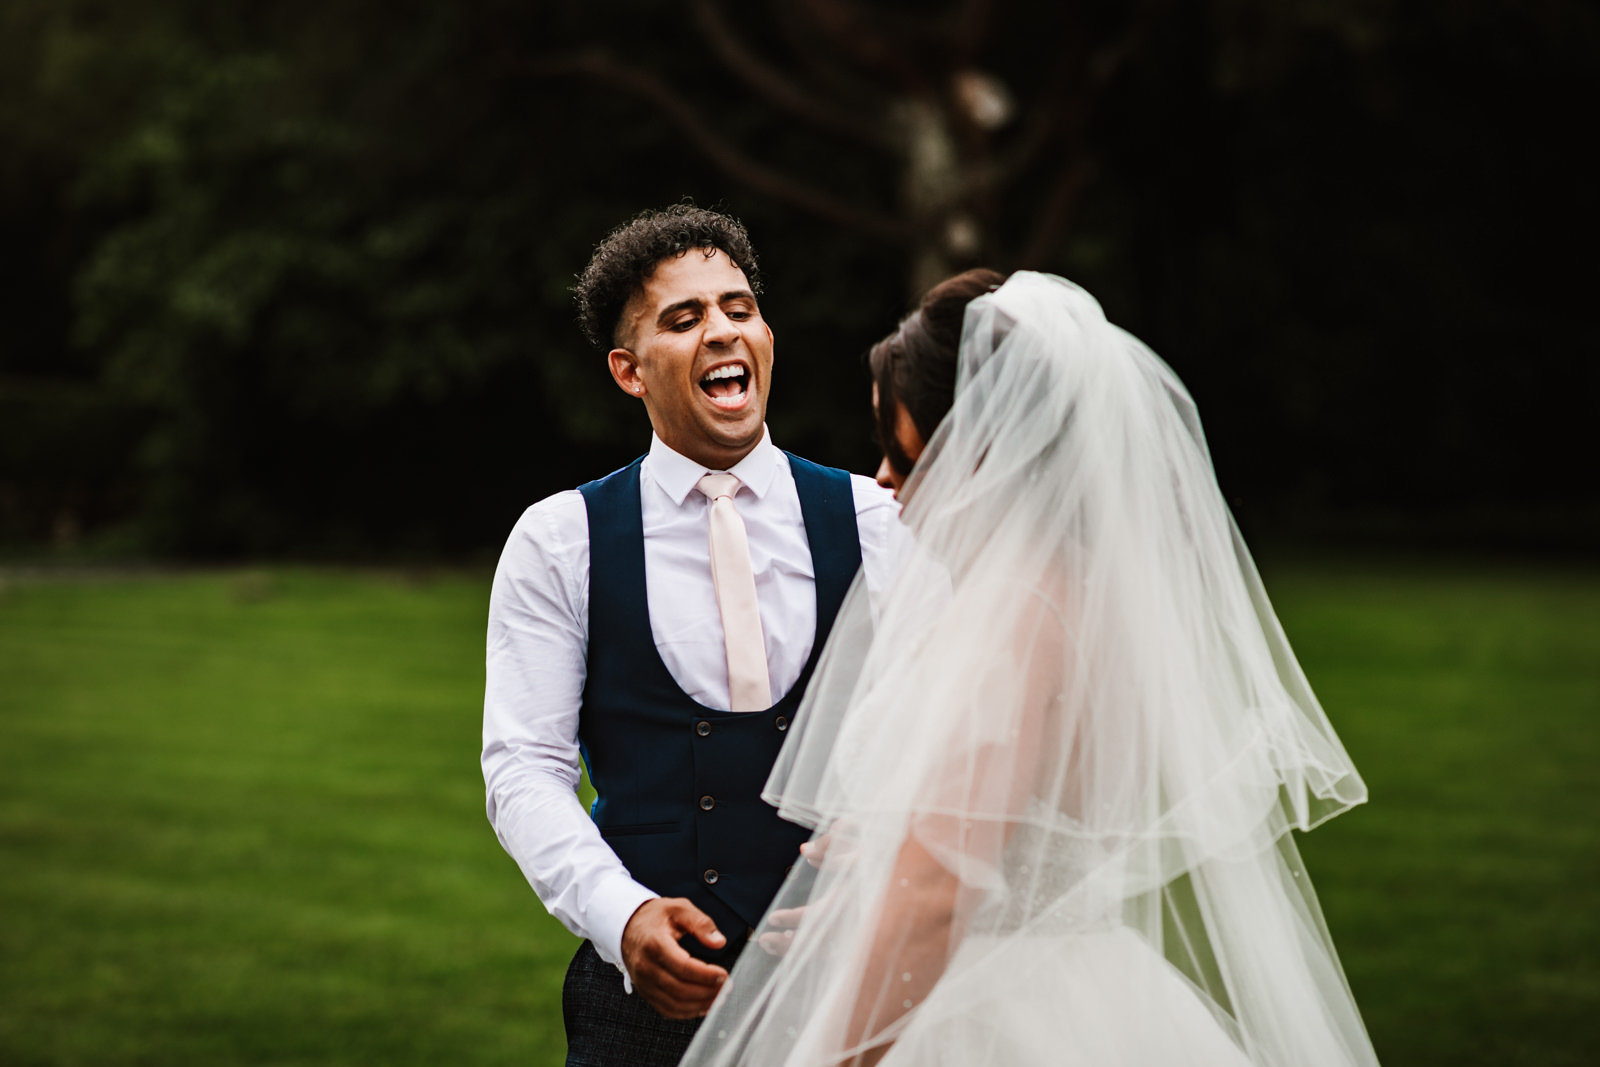 Groom laughing with his wife